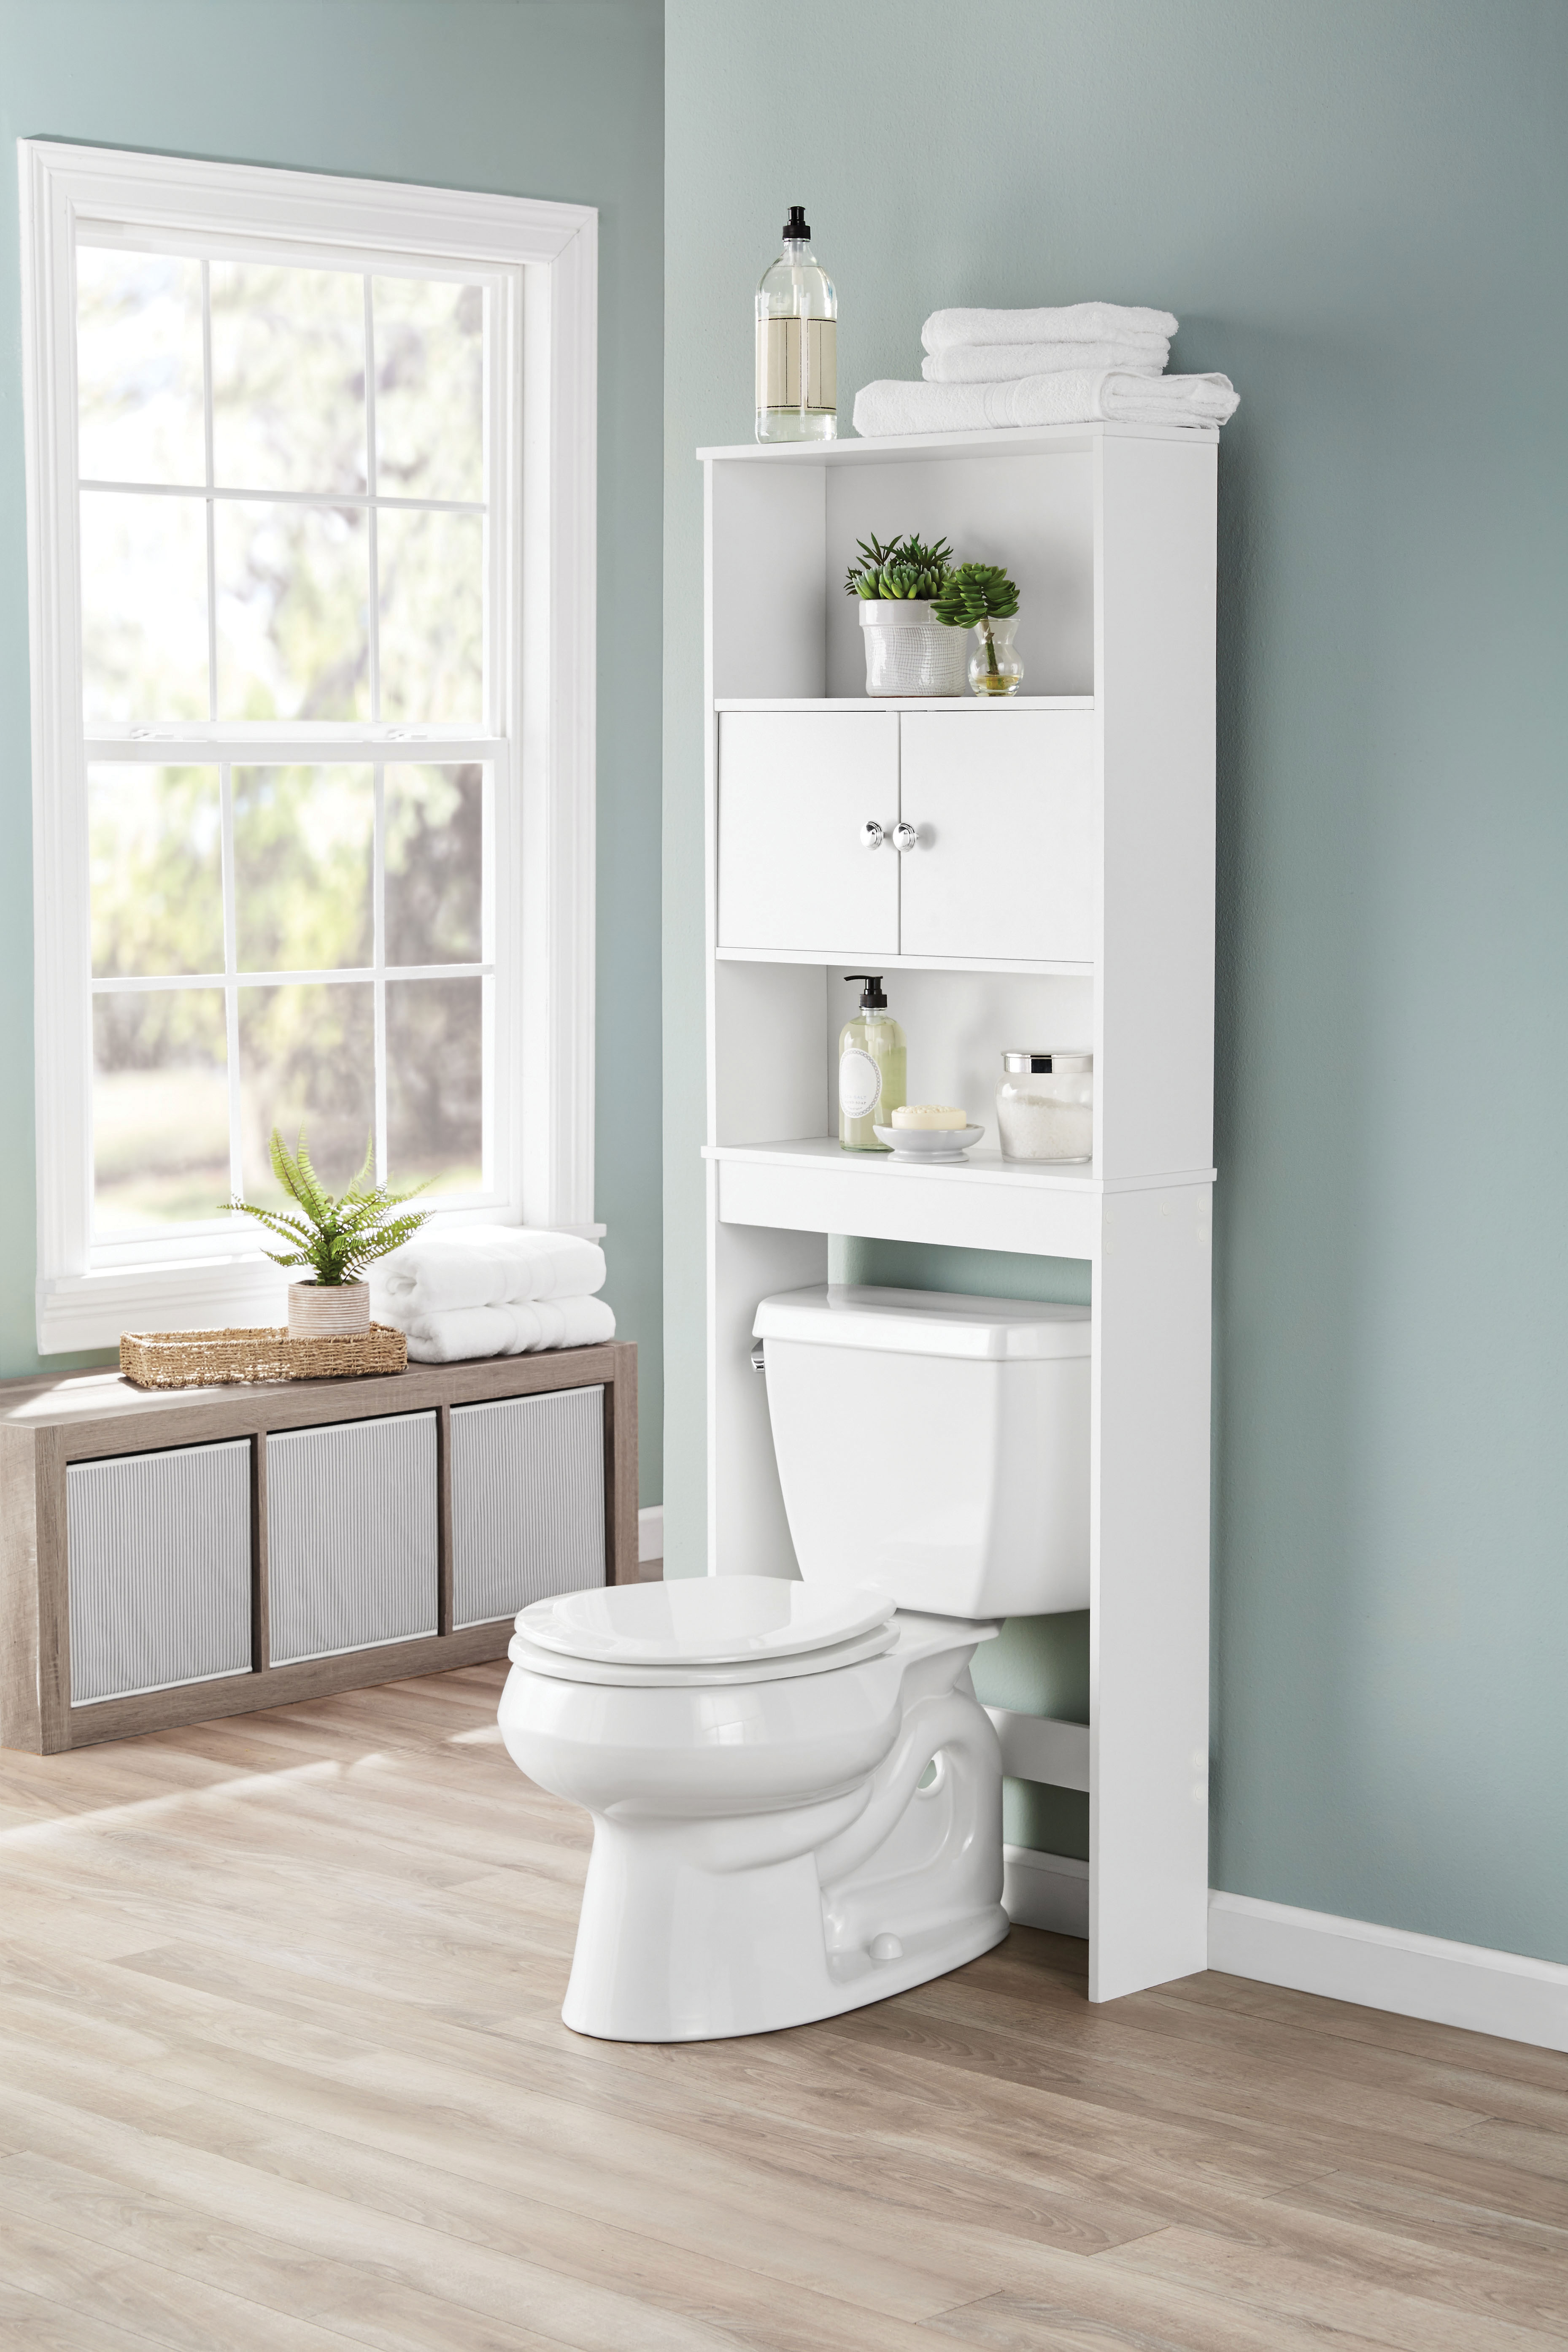 Mainstays Bathroom Storage Over The Toilet Space Saver White with regard to proportions 3717 X 5575